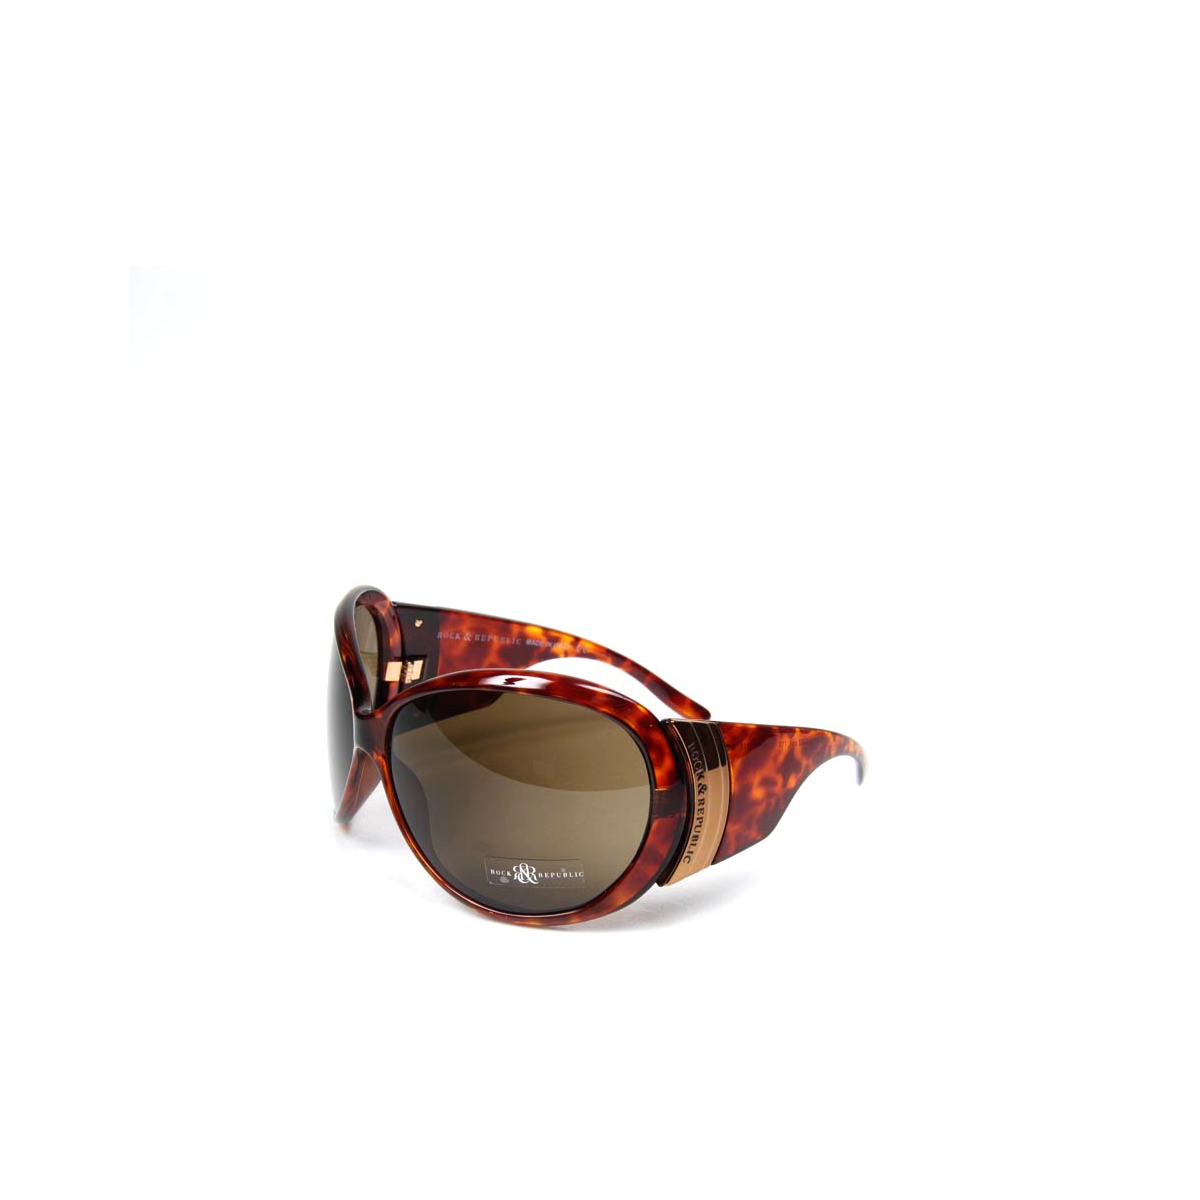 Rock & Republic ladies sunglasses RR51002 Sunglasses